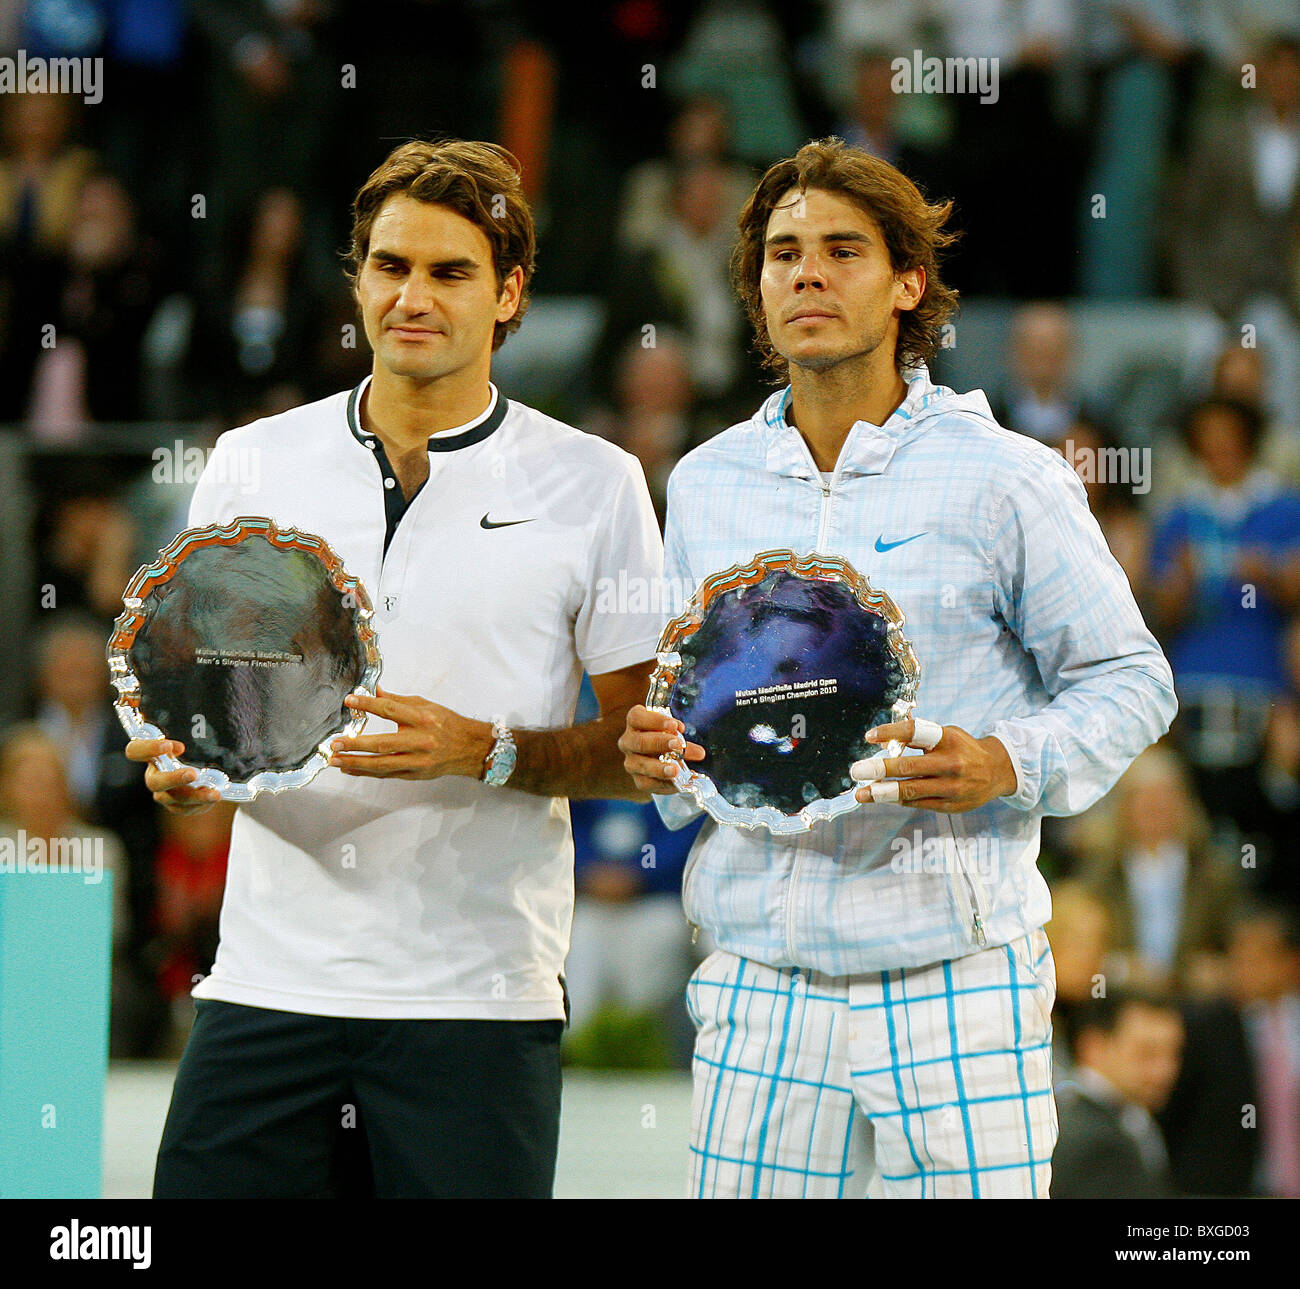 Rafael Nadal defeated defending champion Roger Federer 6-4 7-6 in the Madrid Masters final, - Stock Image